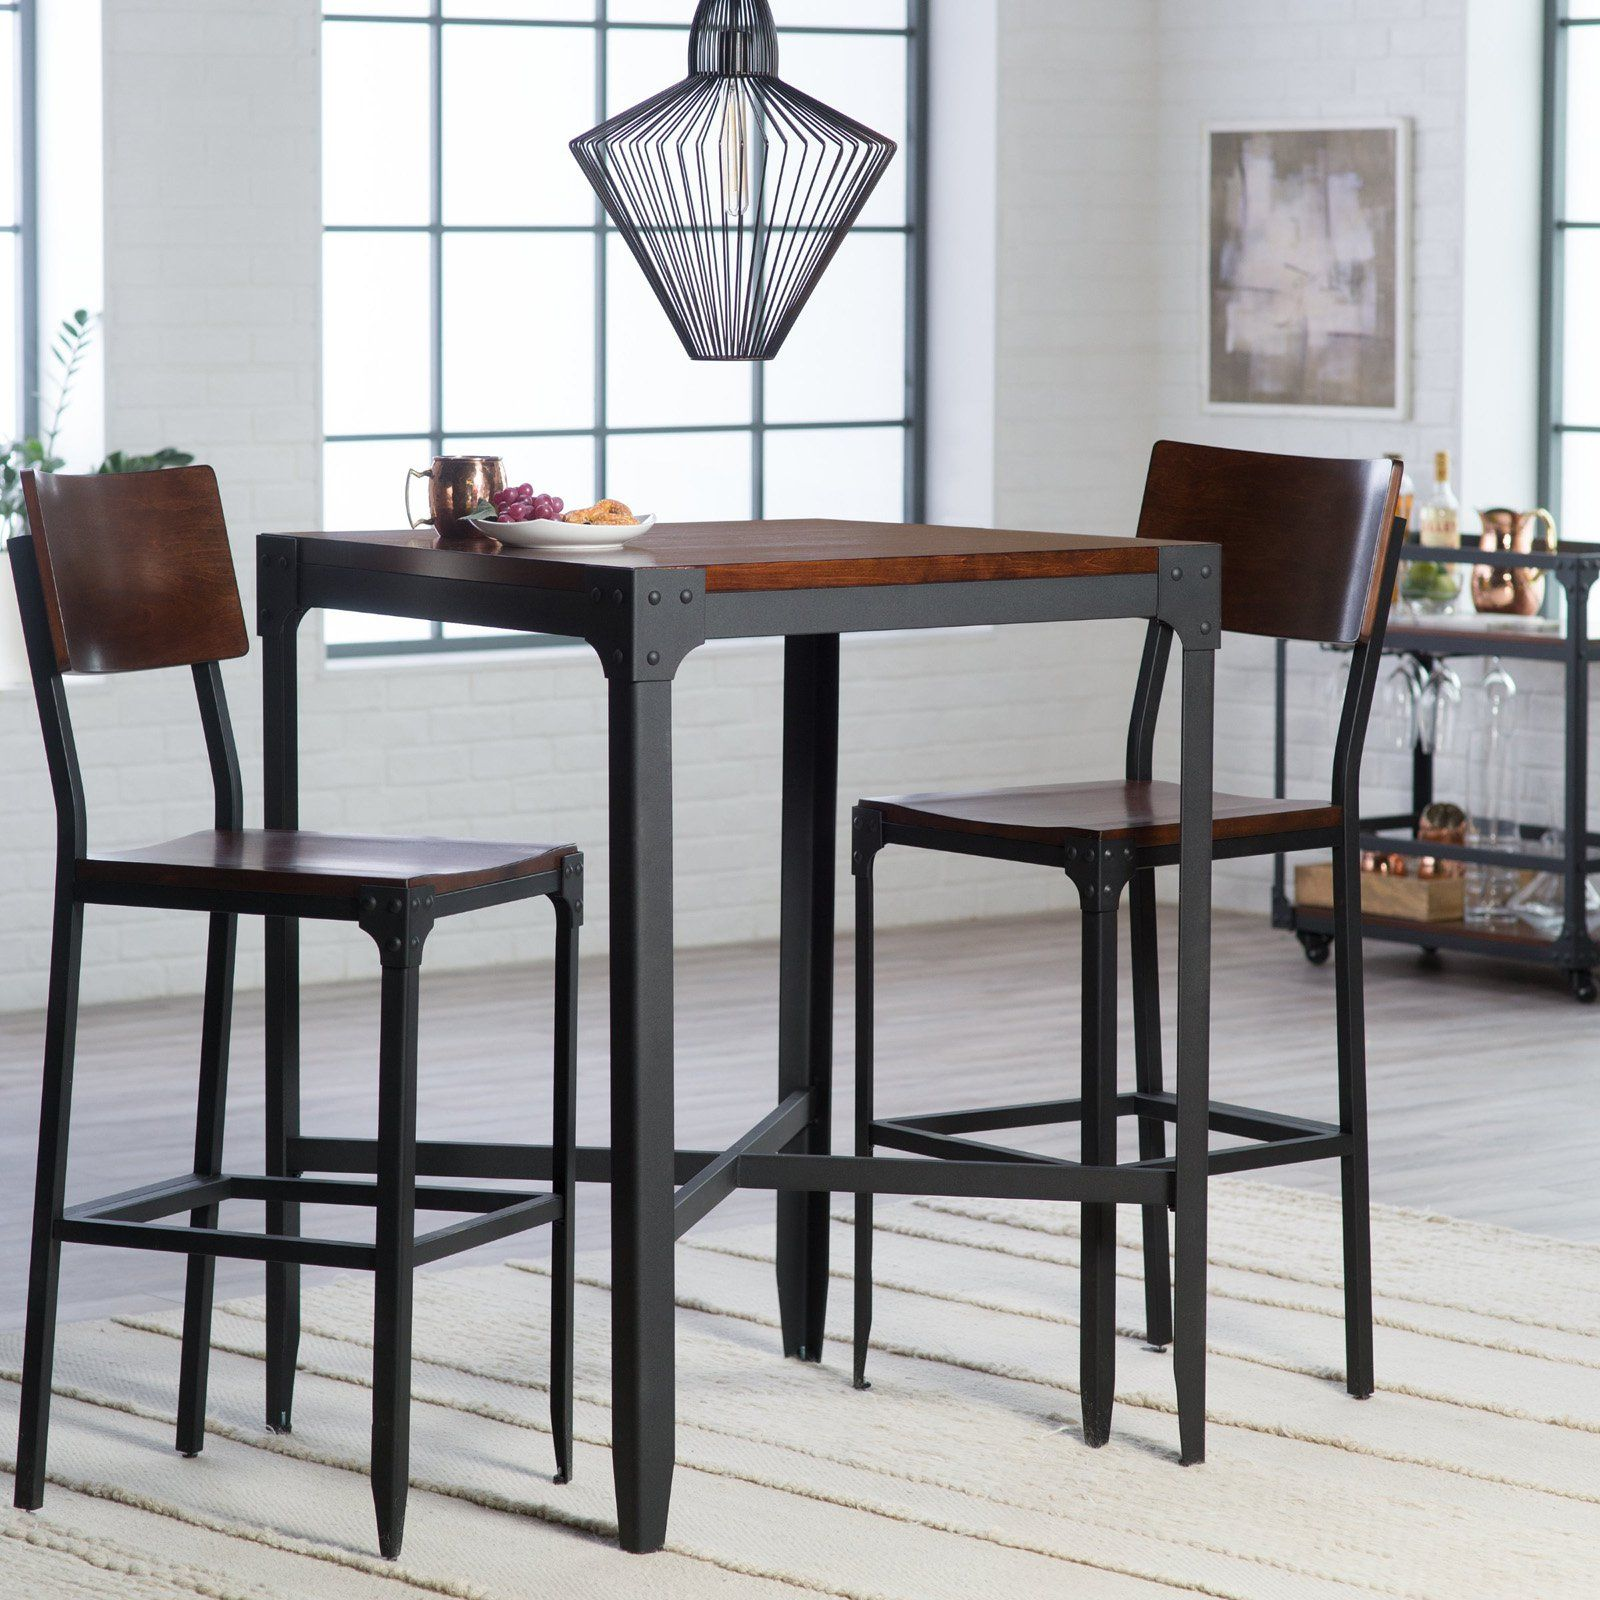 Belham Living Ton 3 Piece Pub Table Set Products In